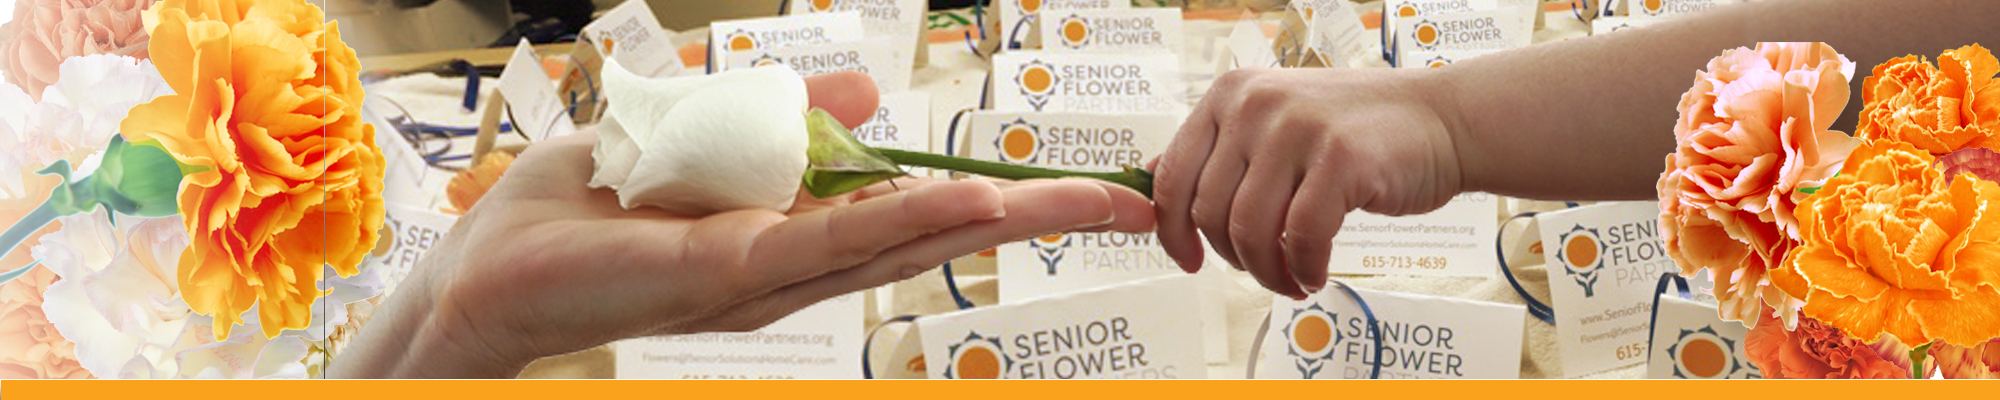 senior flower partners homepage slider